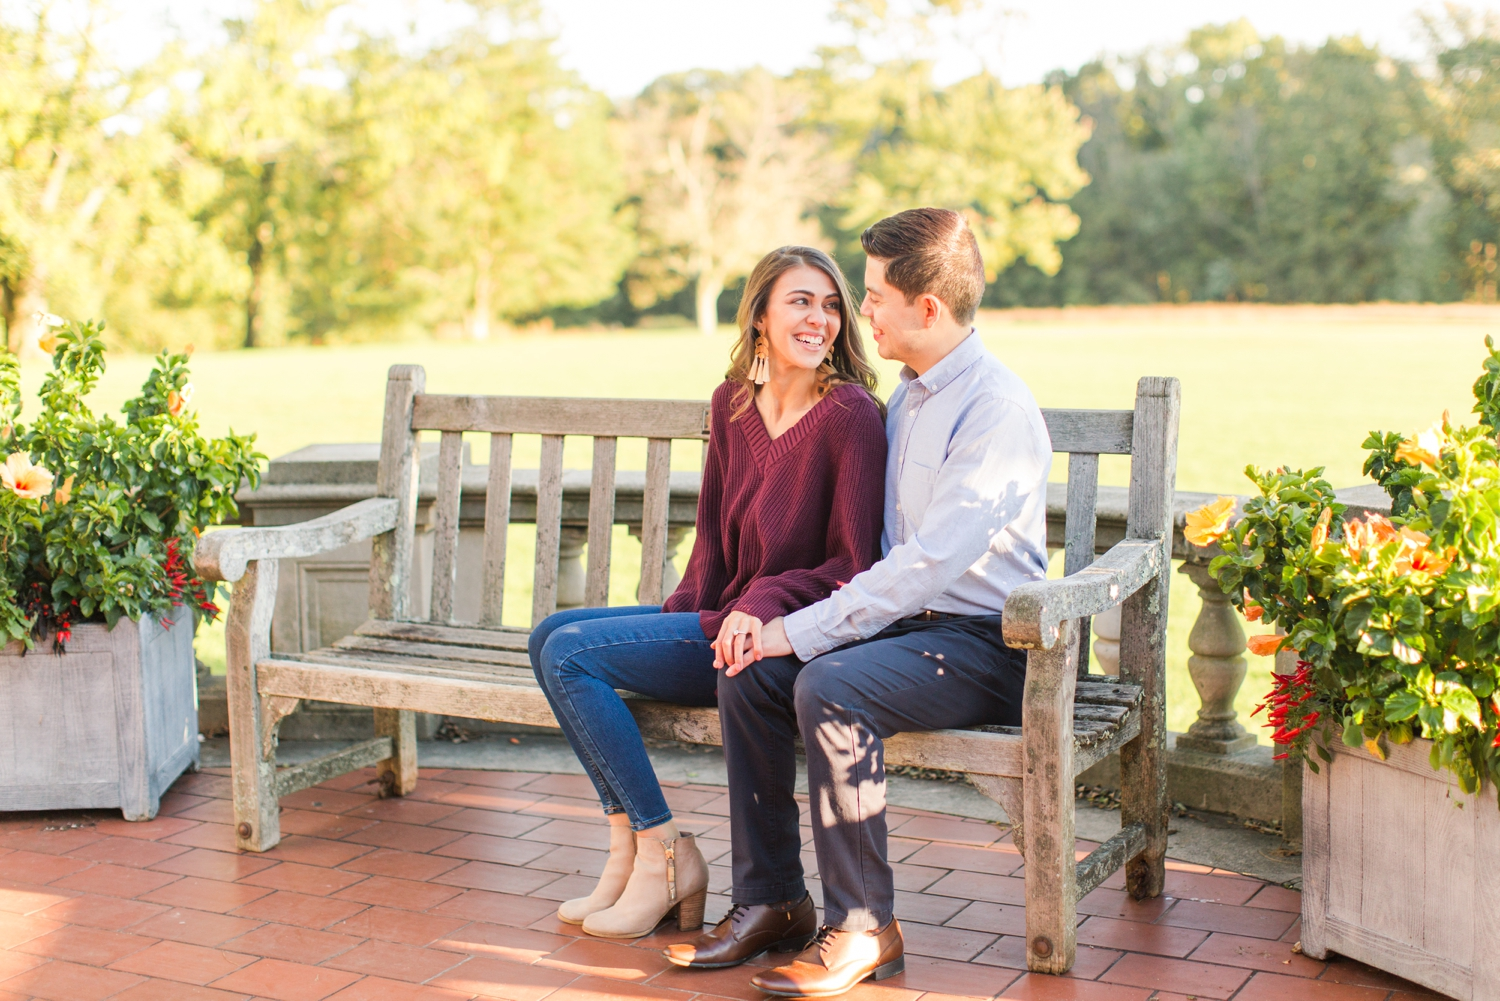 waveny-park-engagement-session-new-canaan-connecticut-top-wedding-photographer-shaina-lee-photography-photo-21.jpg